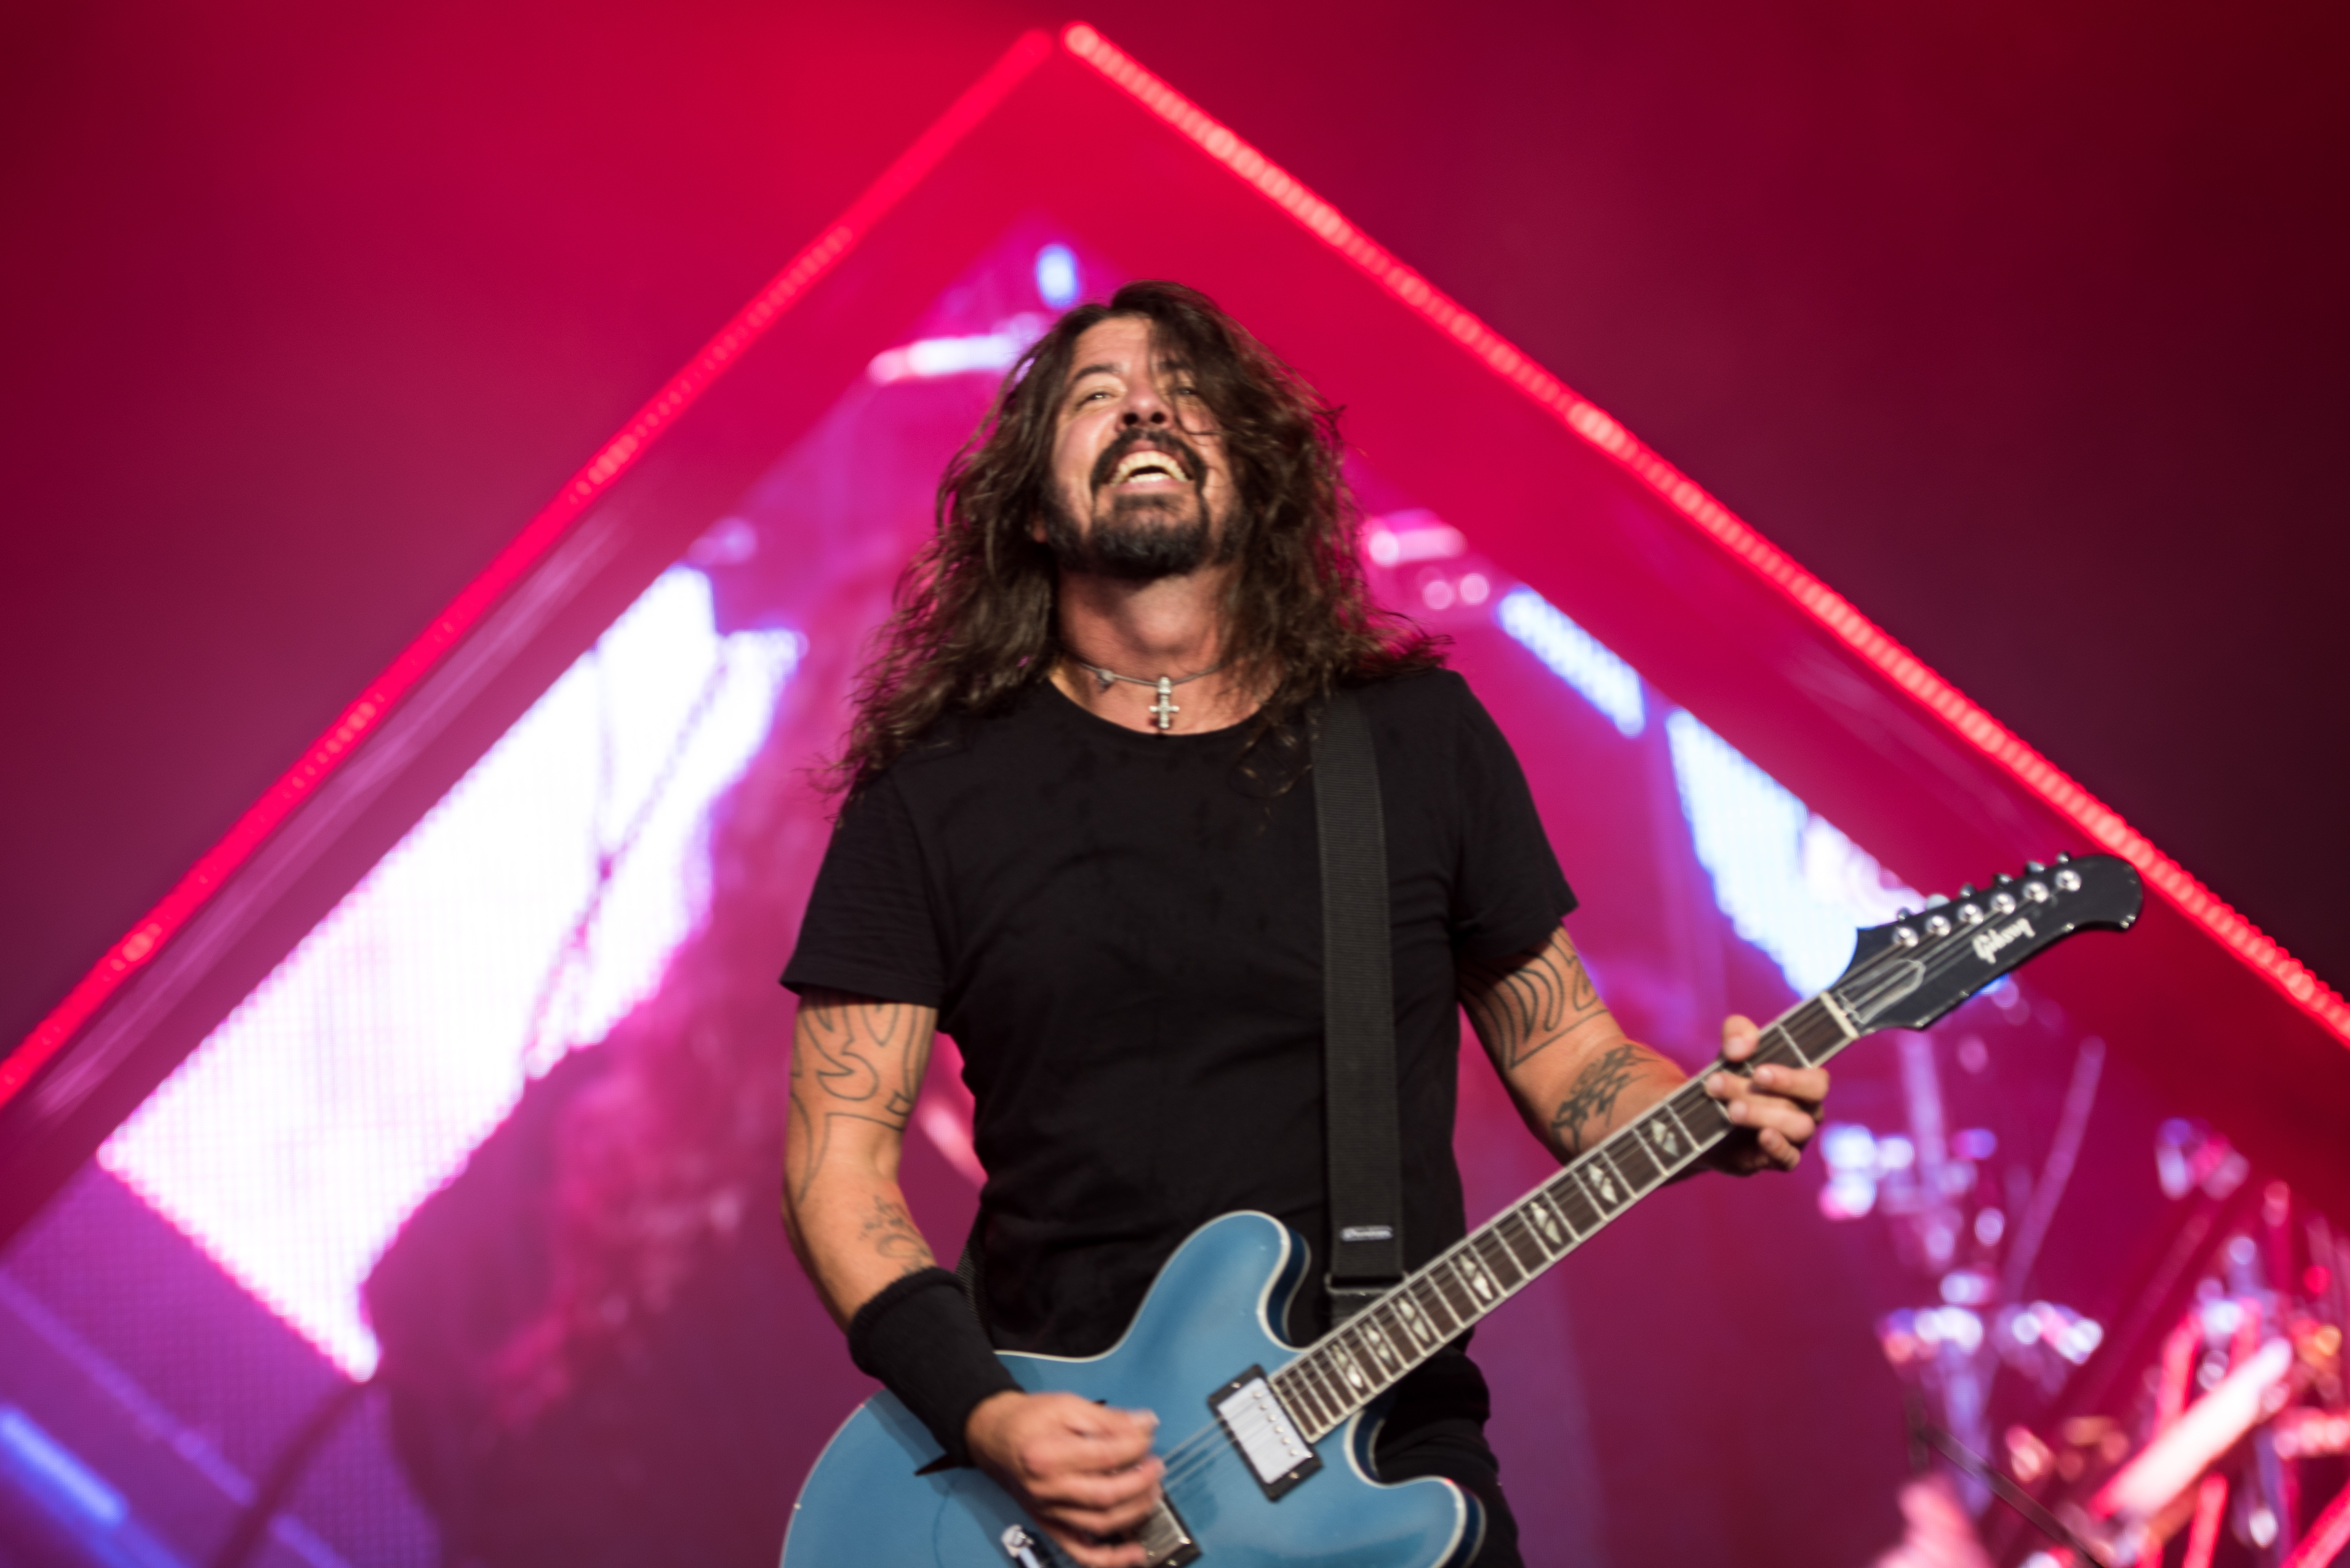 Watch Foo Fighters Prank Fans With Fake Stage Fall in Sweden